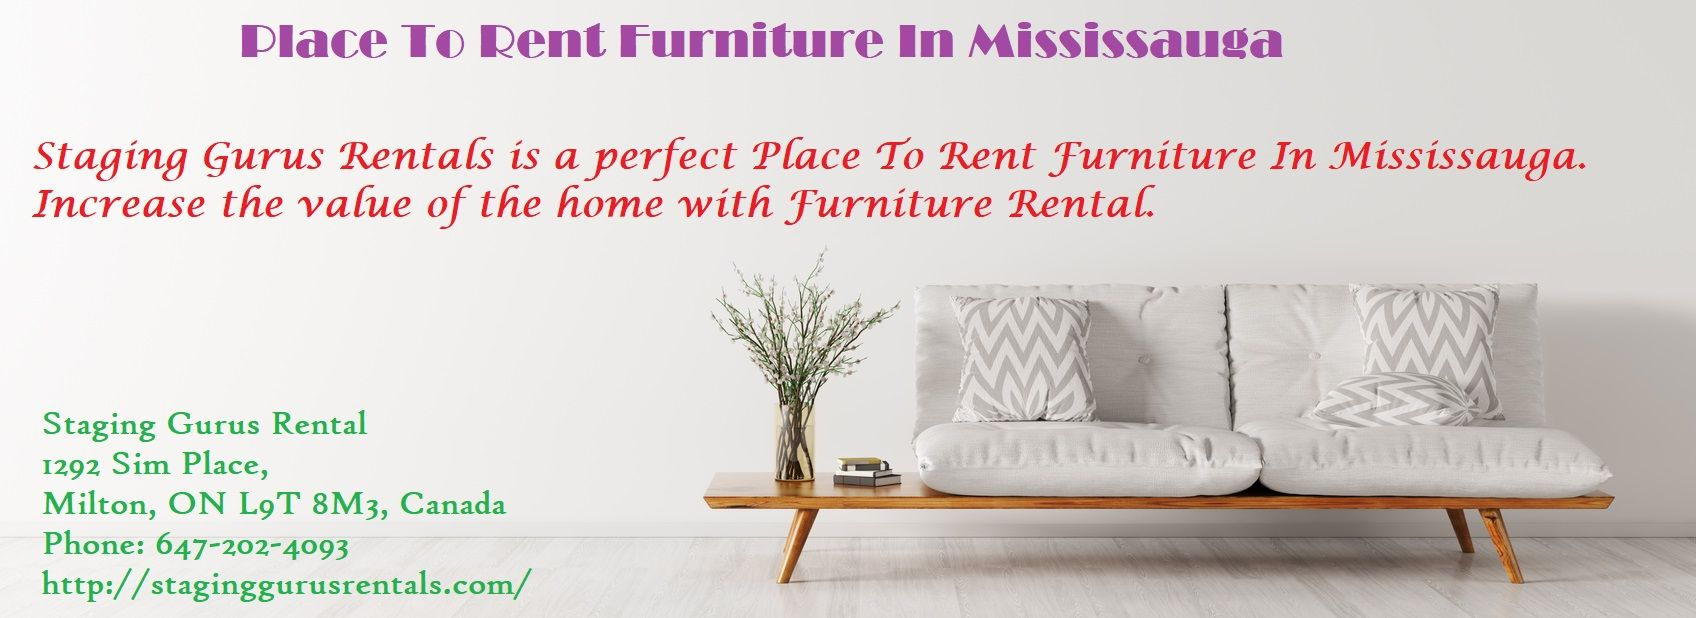 Place To Rent Furniture In Mississauga Places To Rent Furniture Mississauga